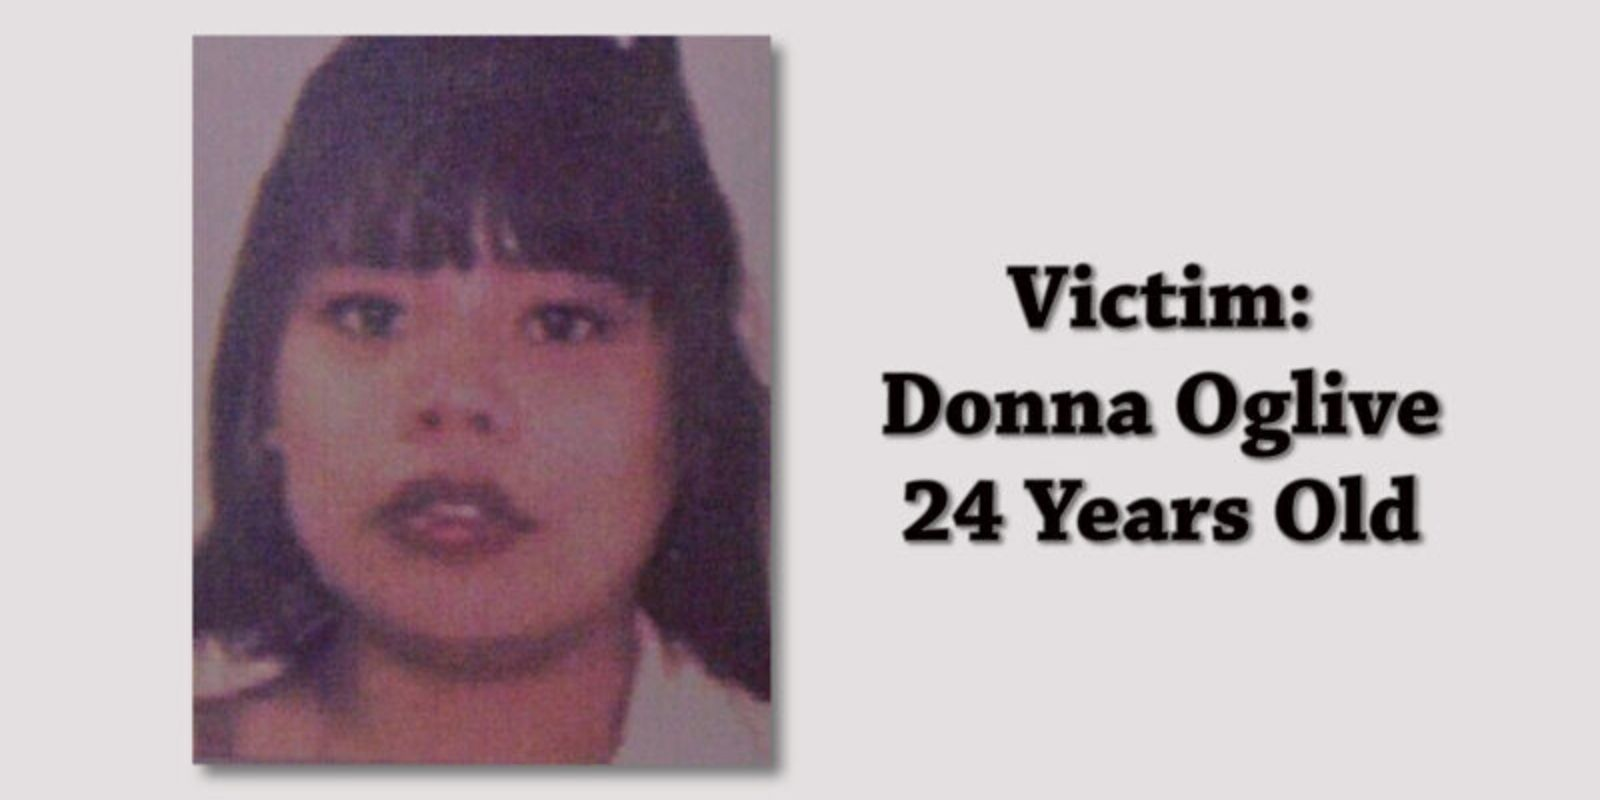 Toronto police looking for tips to solve 90s murder of pregnant woman